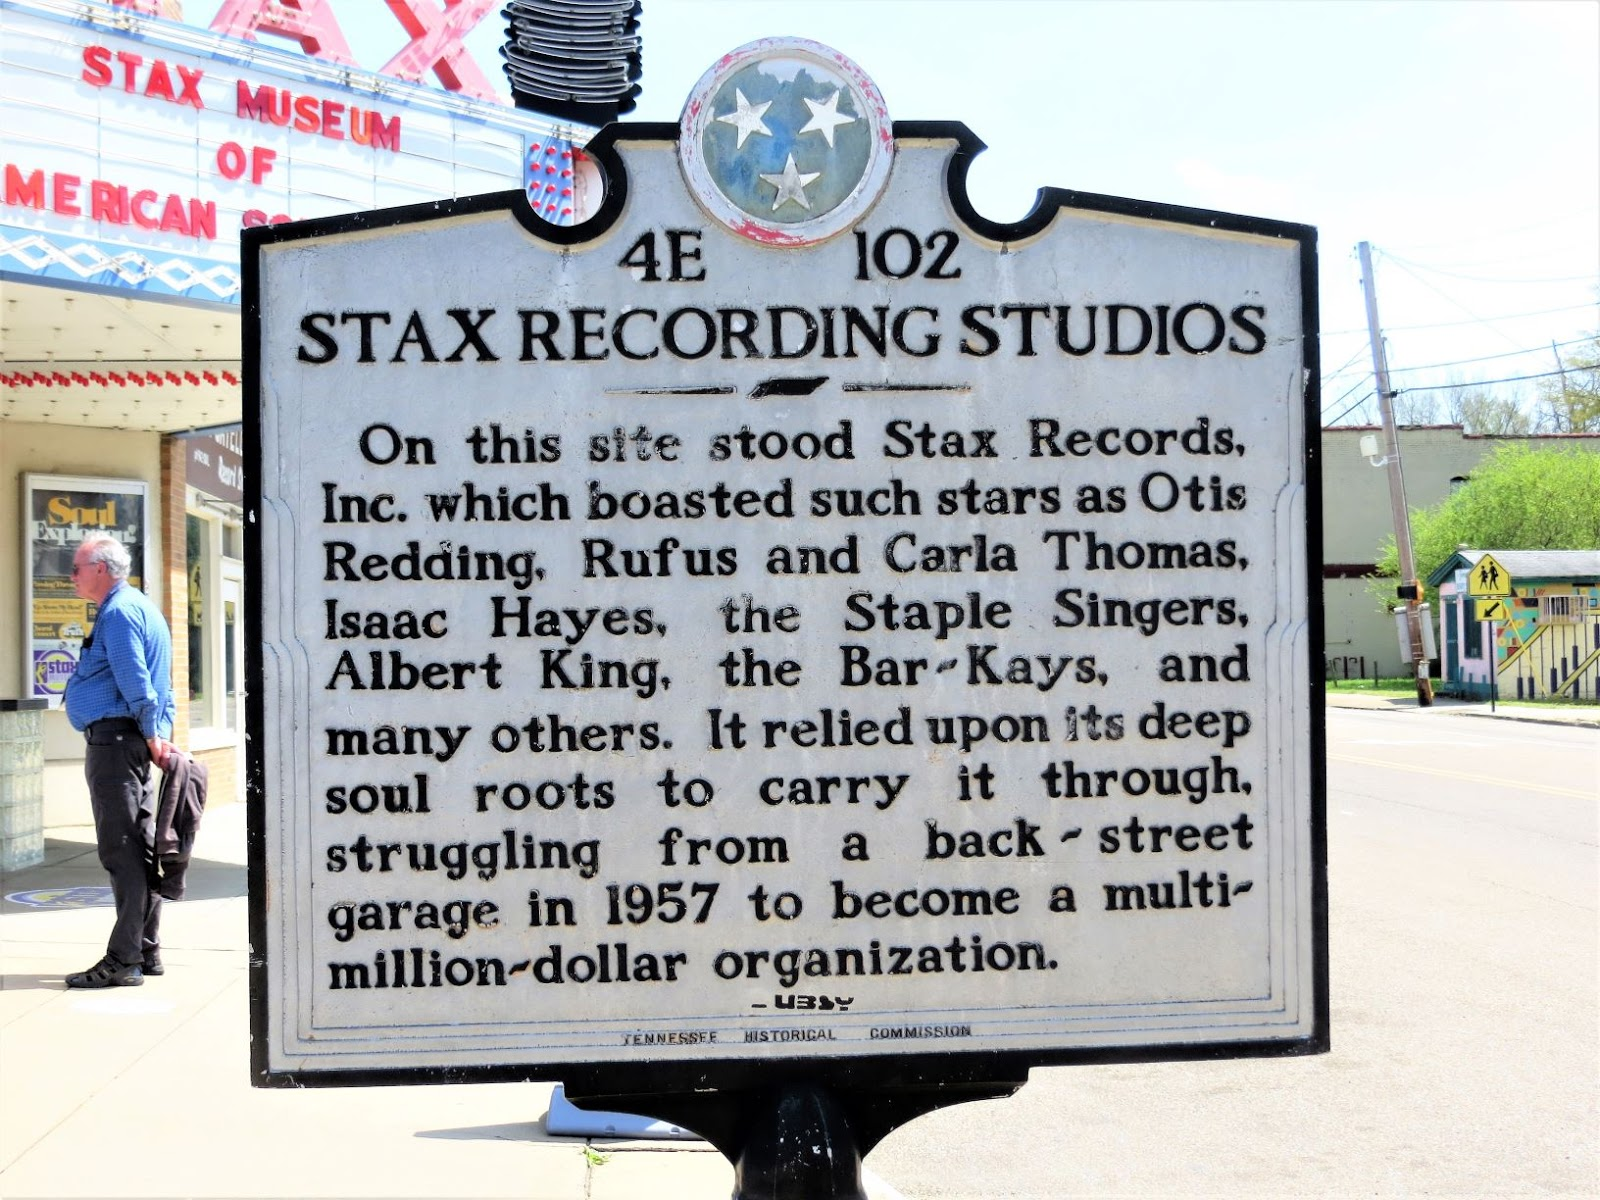 Travel Bug: Stax Museum of American Soul Music in Memphis, Tennessee